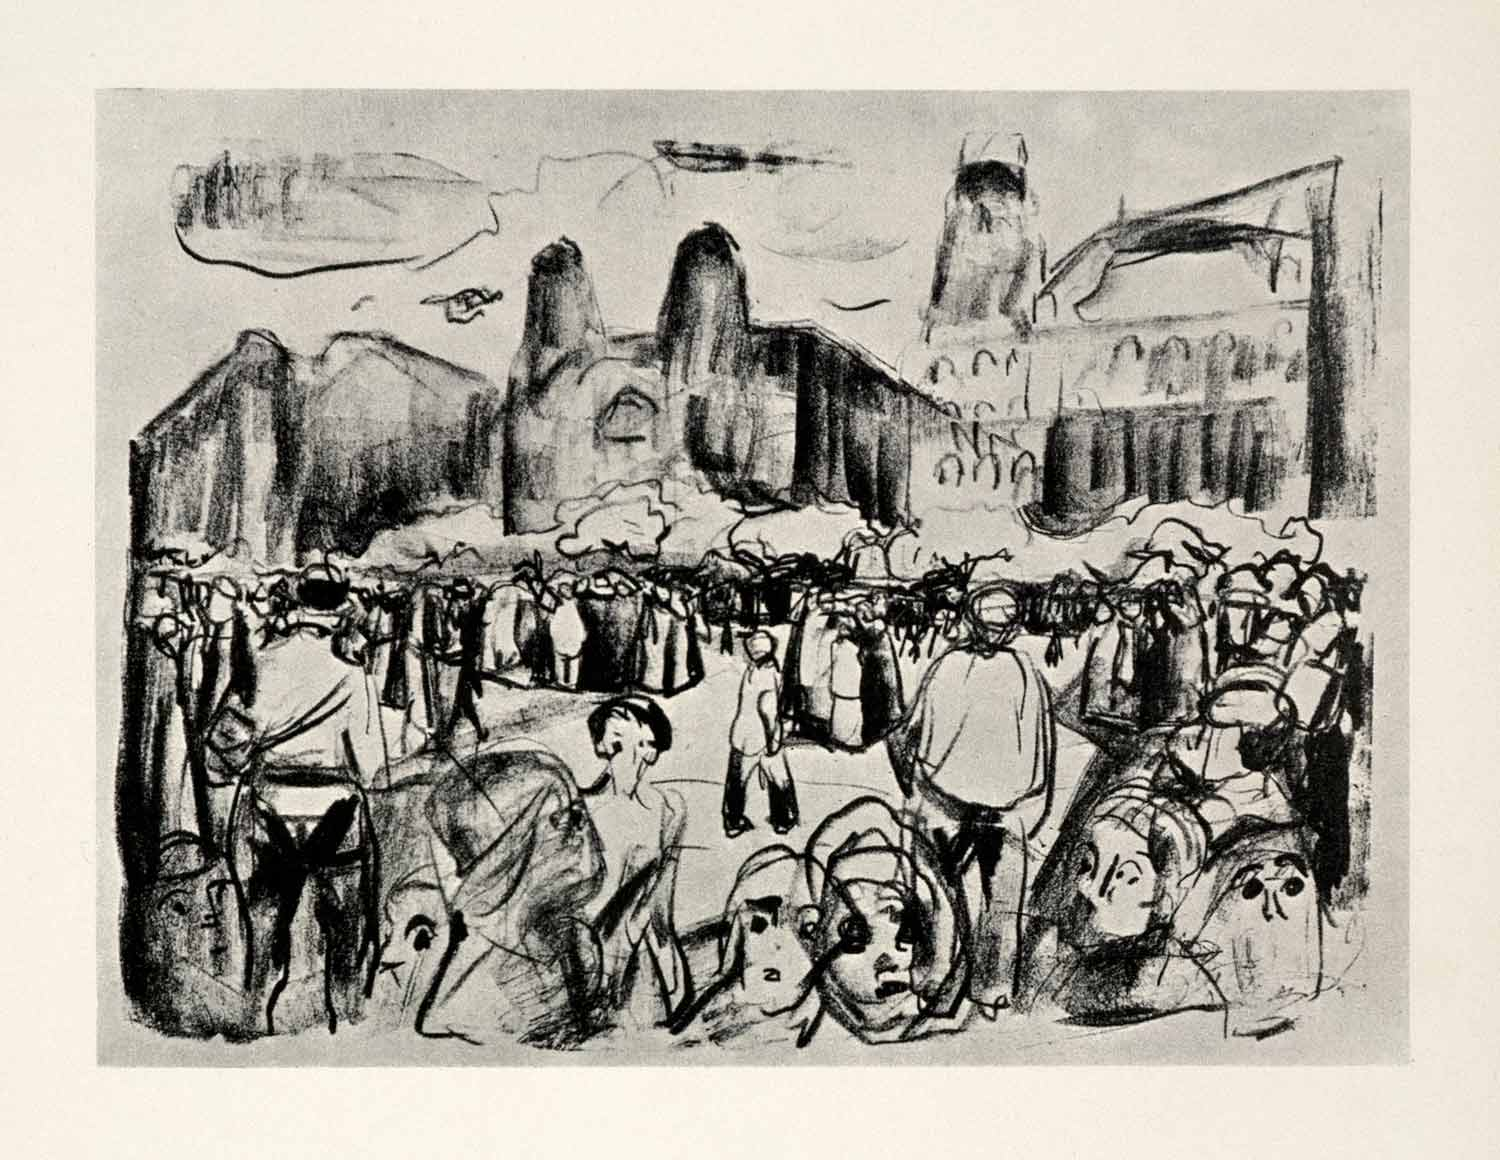 1958 Print Edvard Munch Rioting Frankfurt Railway Square Symbolist  Art Graphic